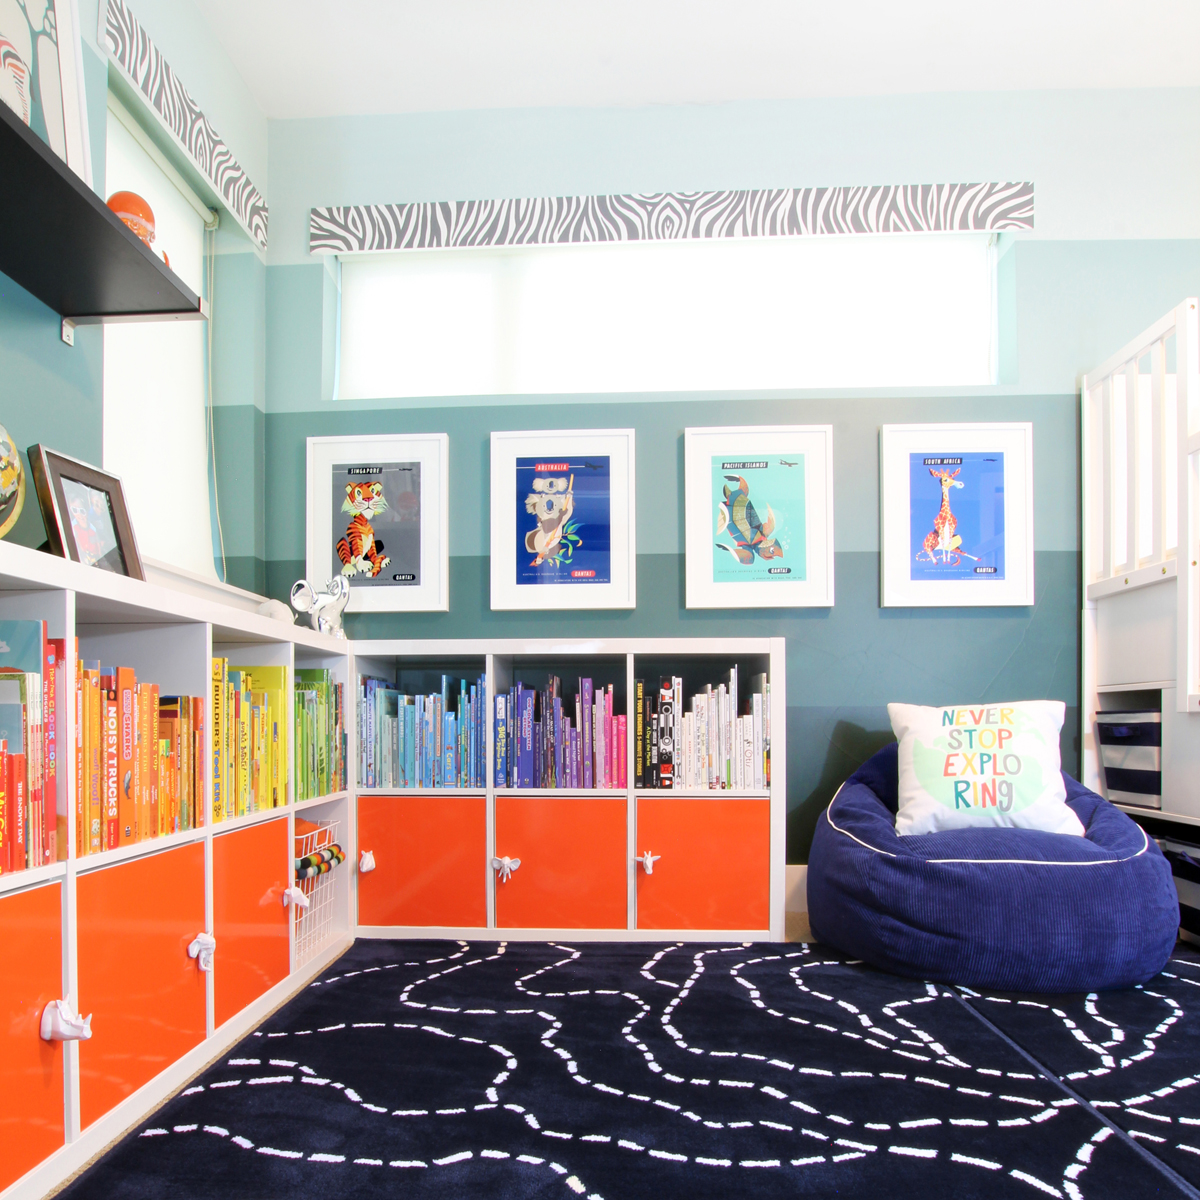 A Small Shared Boys' Room with Bunk Beds